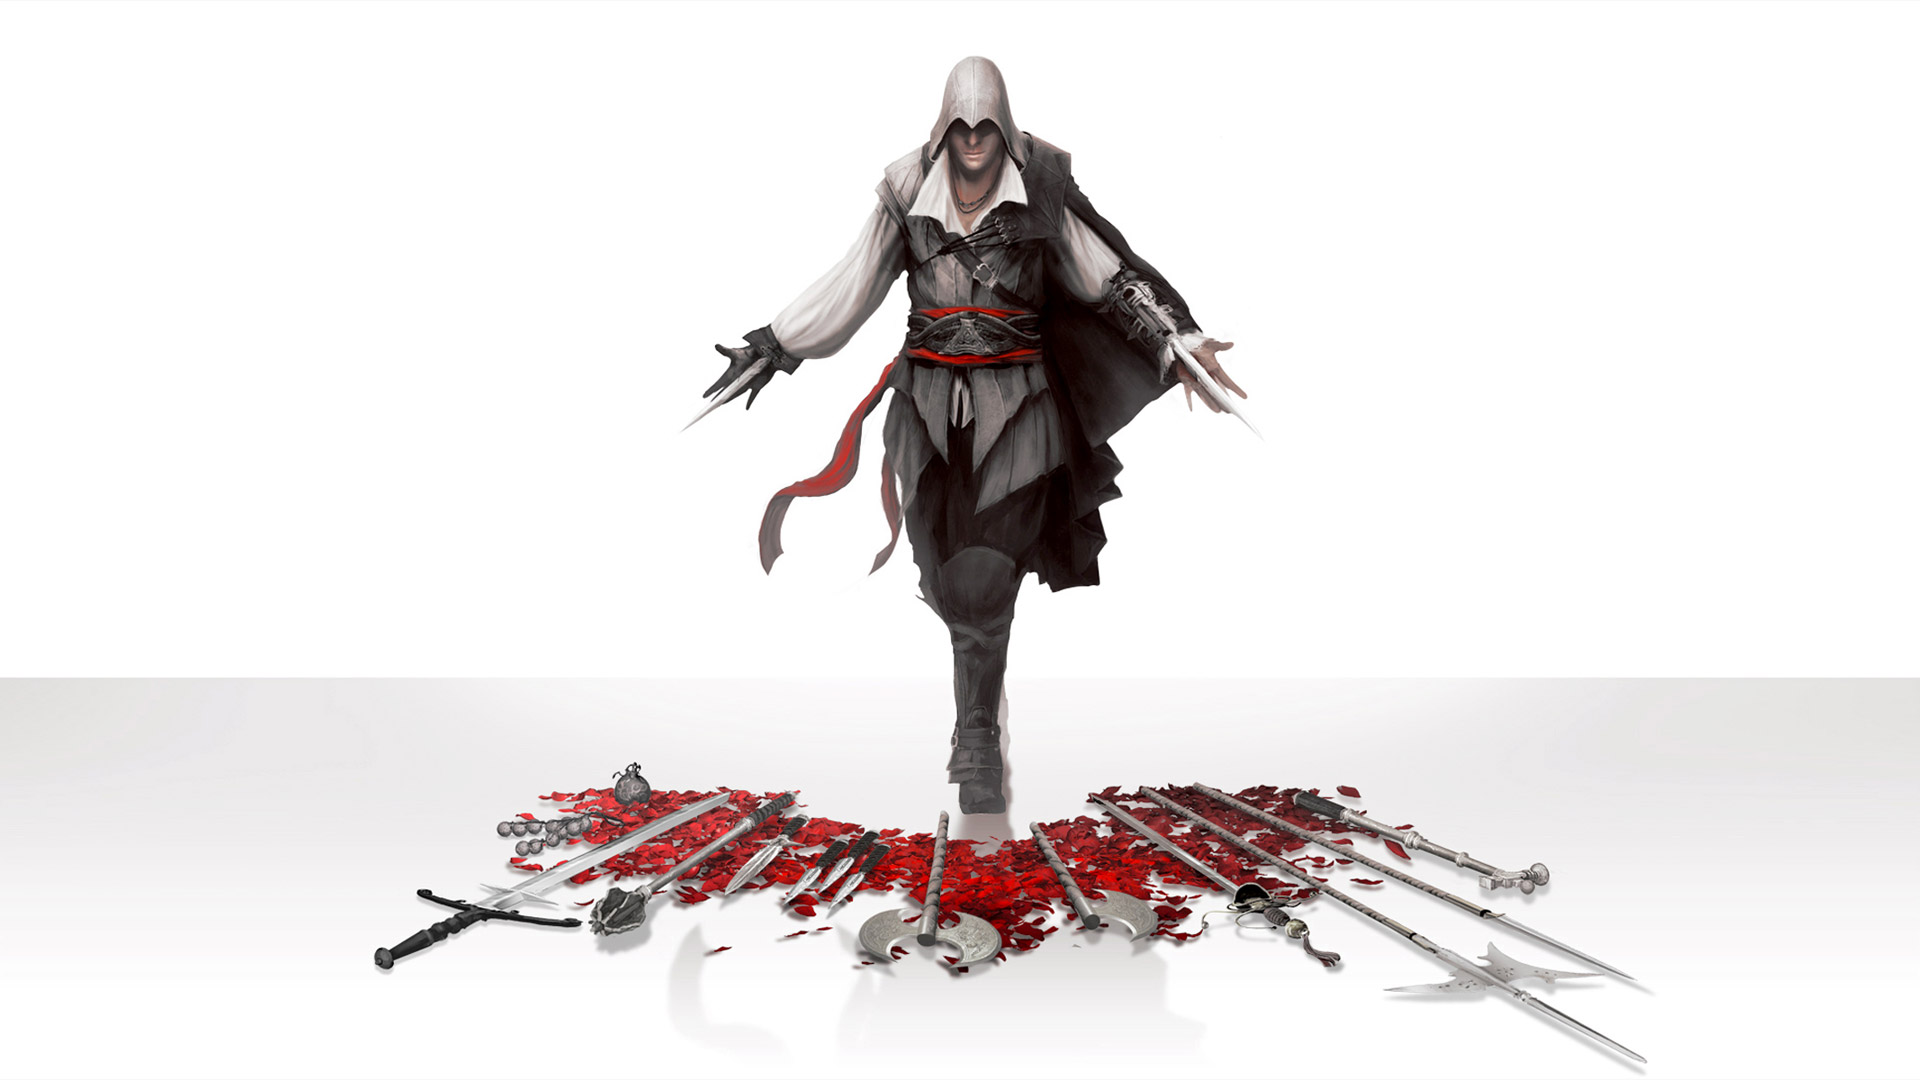 Free Assassin's Creed II Wallpaper in 1920x1080